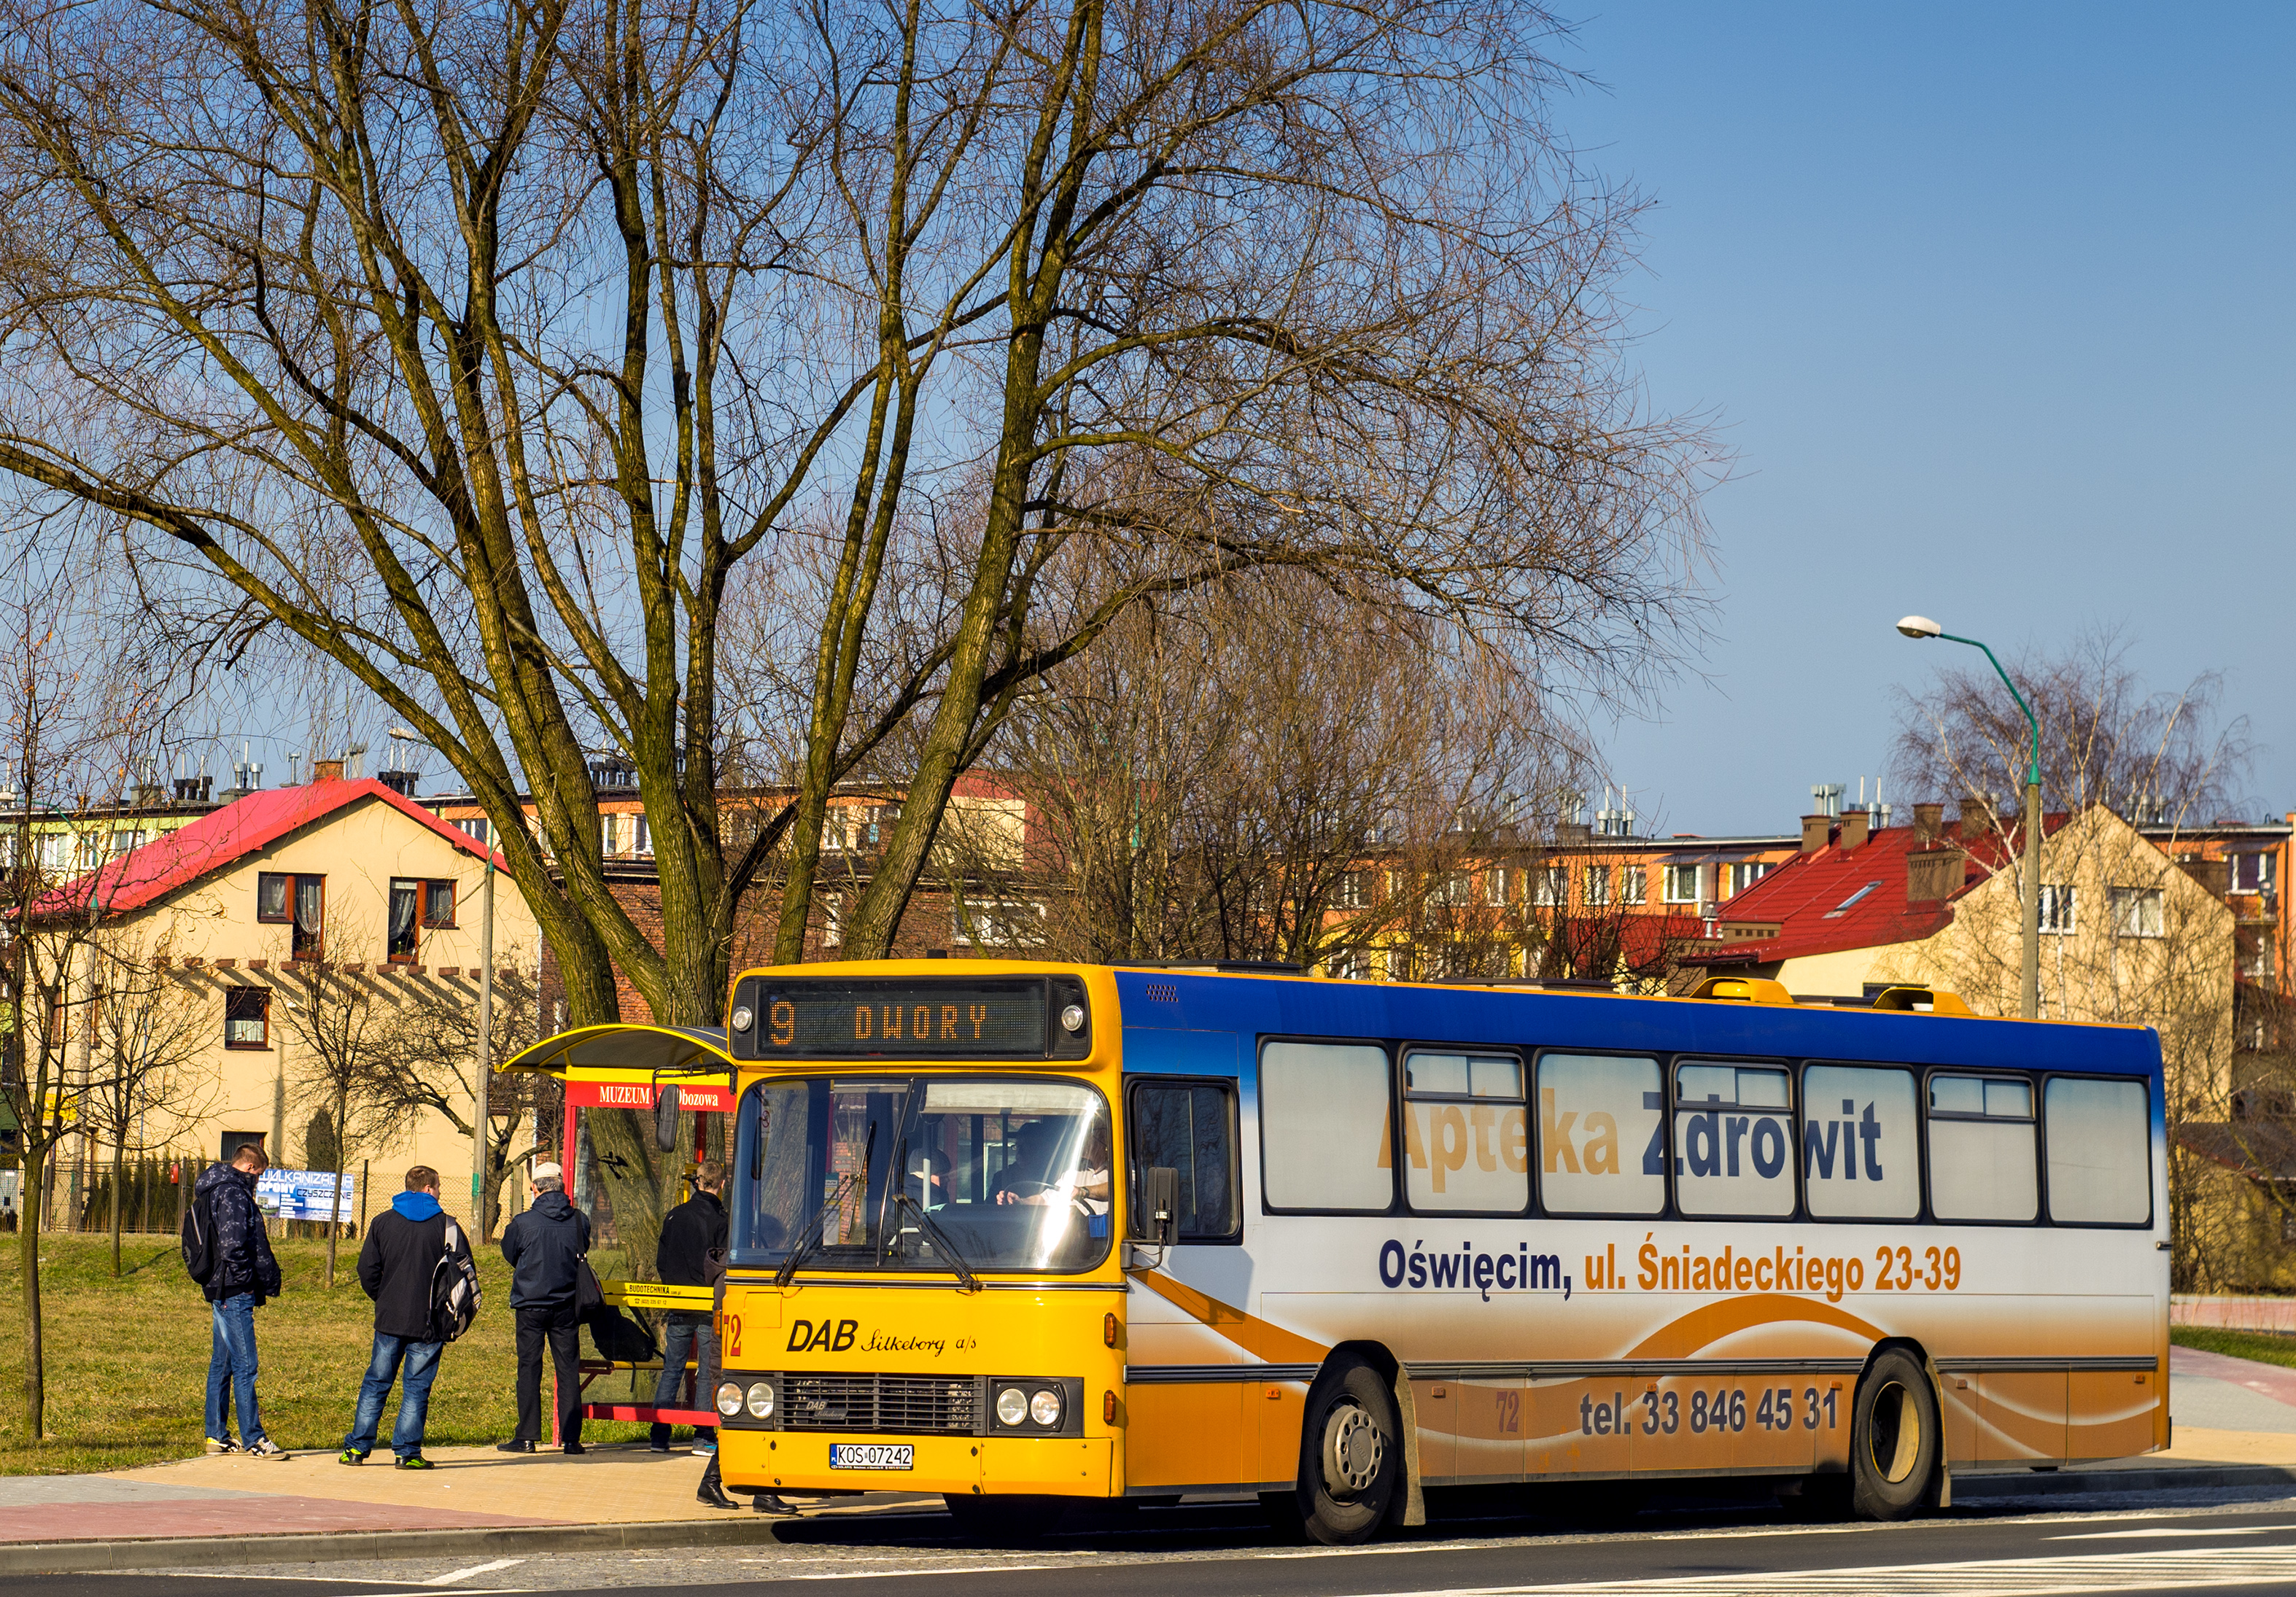 Bus Dab Silkeborg 12 1200b, PublicTransport, Poland, City, Bus, HQ Photo